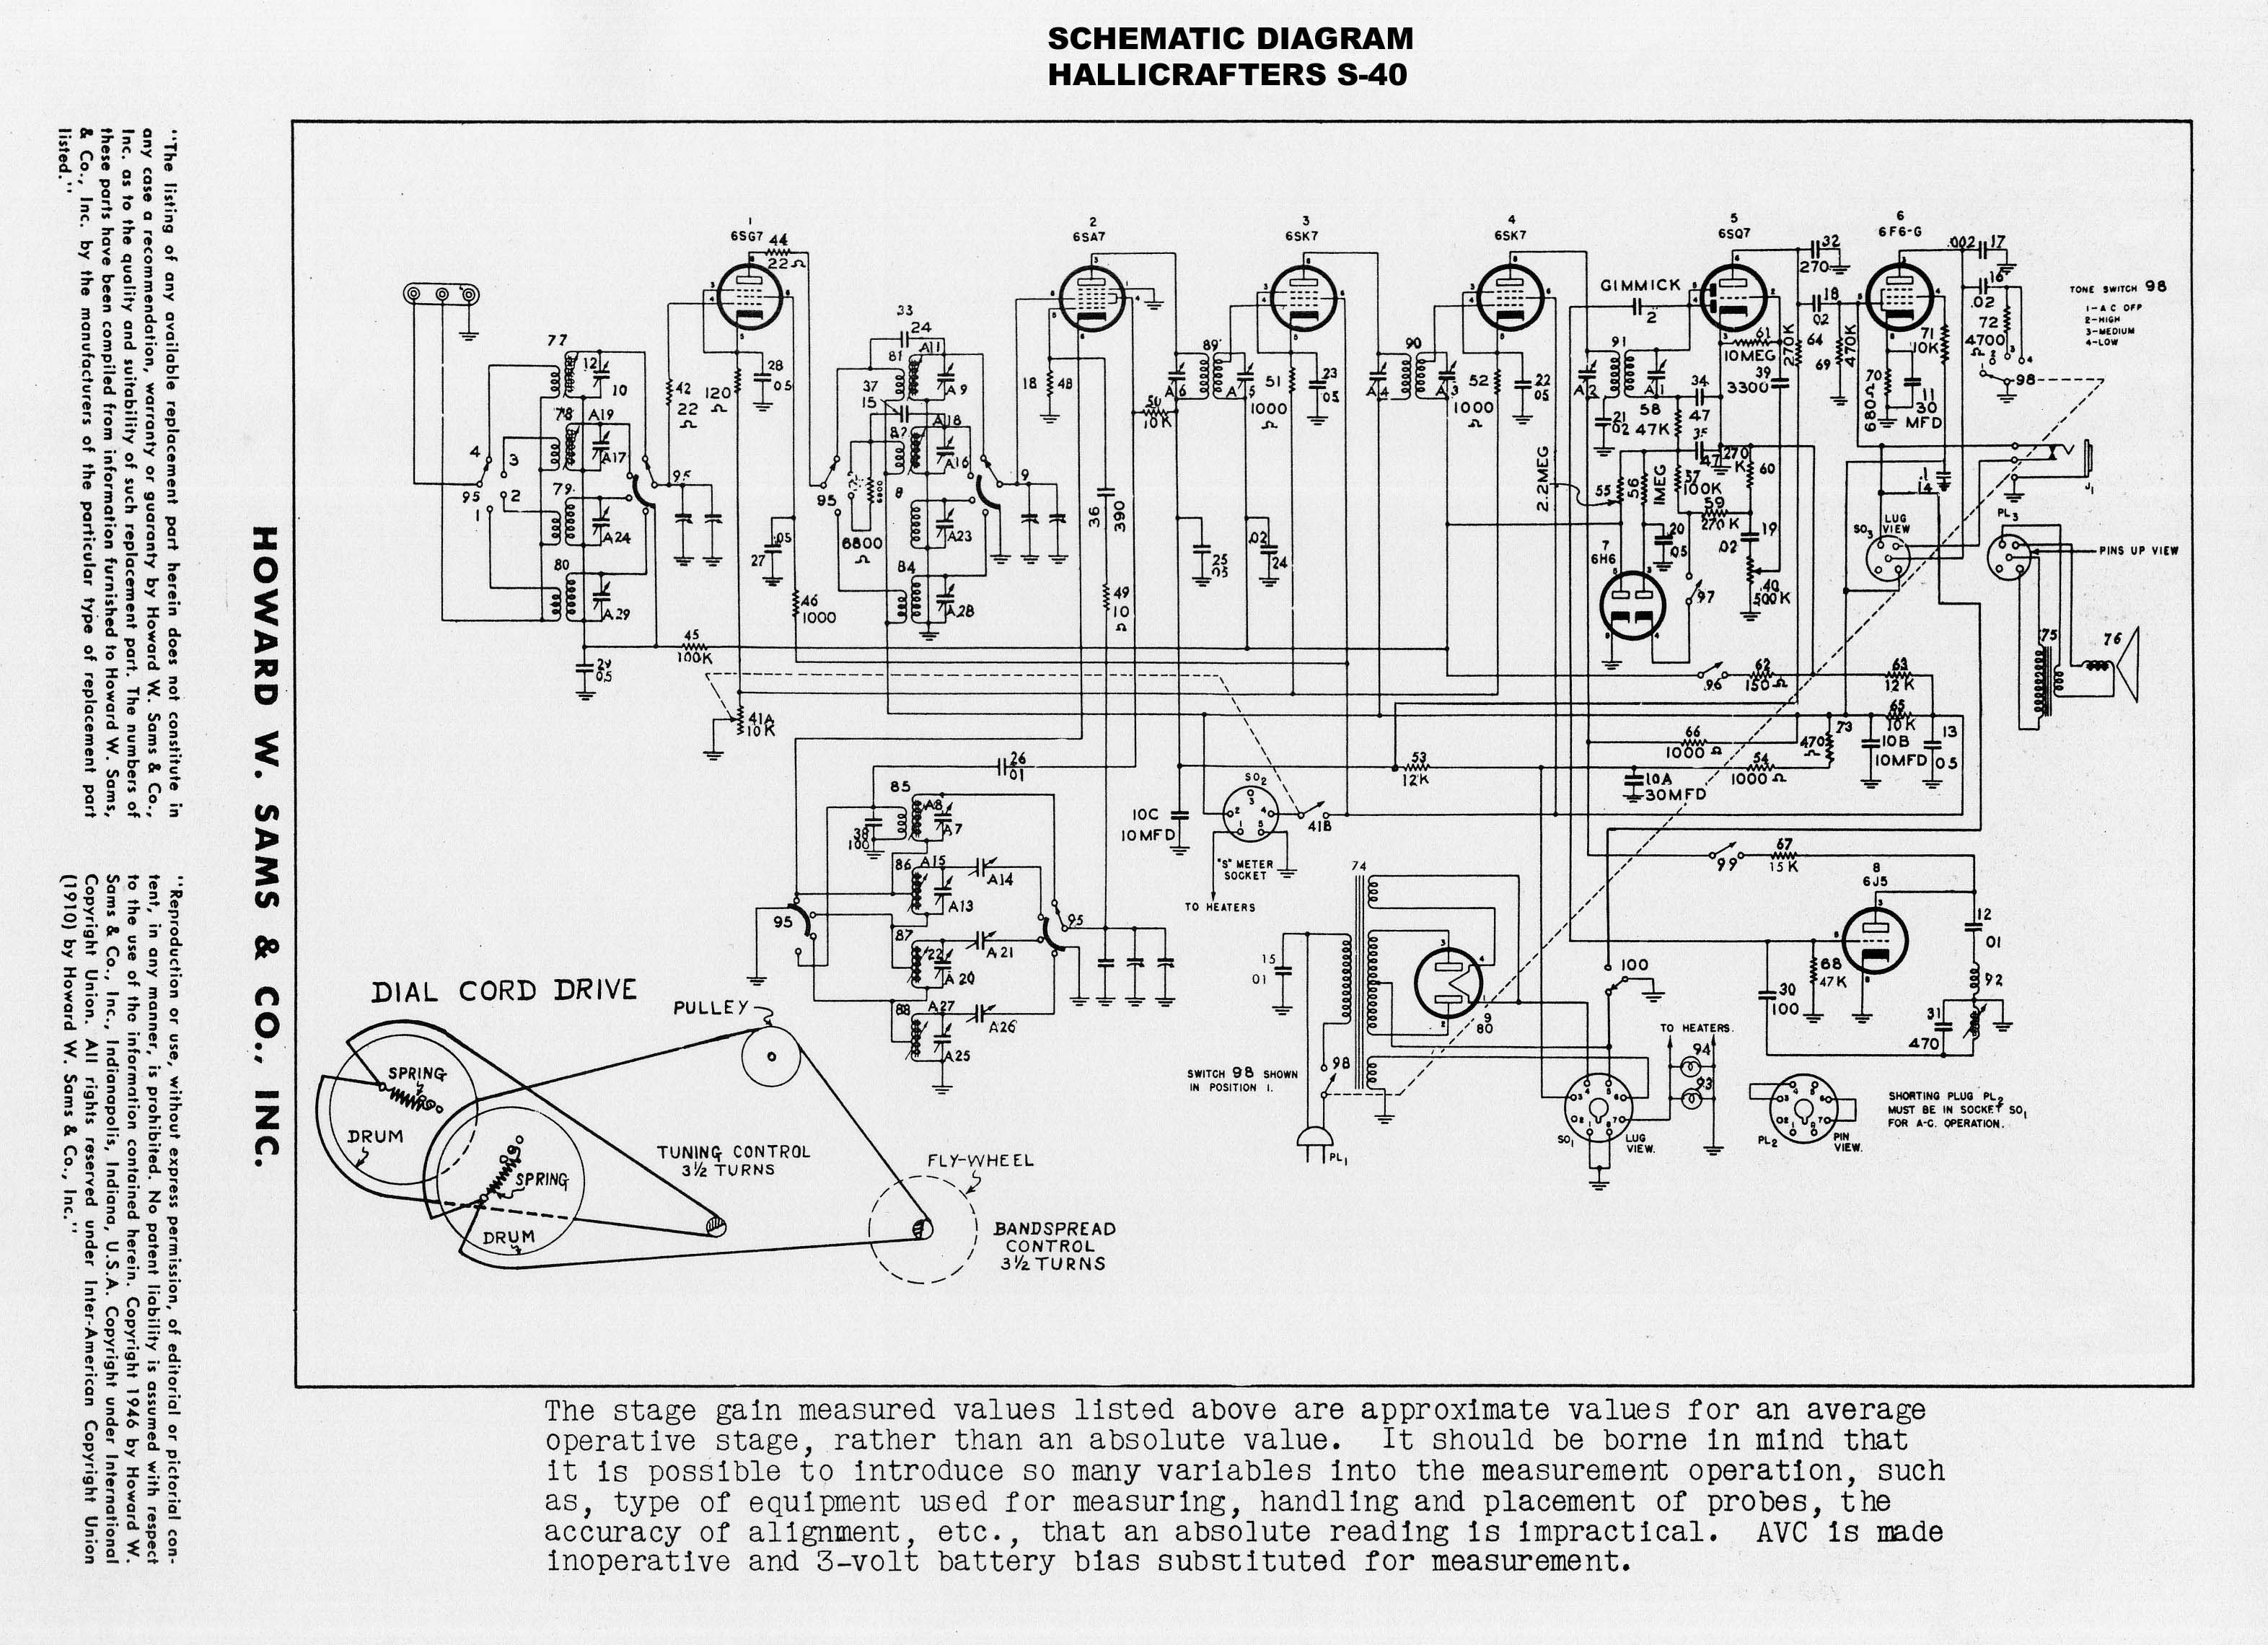 Volvo V40 Engine Diagram - Wiring Diagram Dash on volvo s40 body, volvo amazon wiring diagram, volvo s40 engine diagram, volvo s40 engine removal, volvo s40 brochure, volvo s40 speaker, volvo ignition wiring diagram, volvo s40 frame, volvo s40 valve cover removal, volvo s40 vacuum diagram, volvo s40 antenna, volvo s40 steering diagram, volvo s40 firing order, volvo s40 ignition switch, volvo s40 engine problems, volvo s40 stereo diagram, volvo s40 relay location, volvo s40 thermostat, volvo s40 coolant diagram, volvo s40 starter,